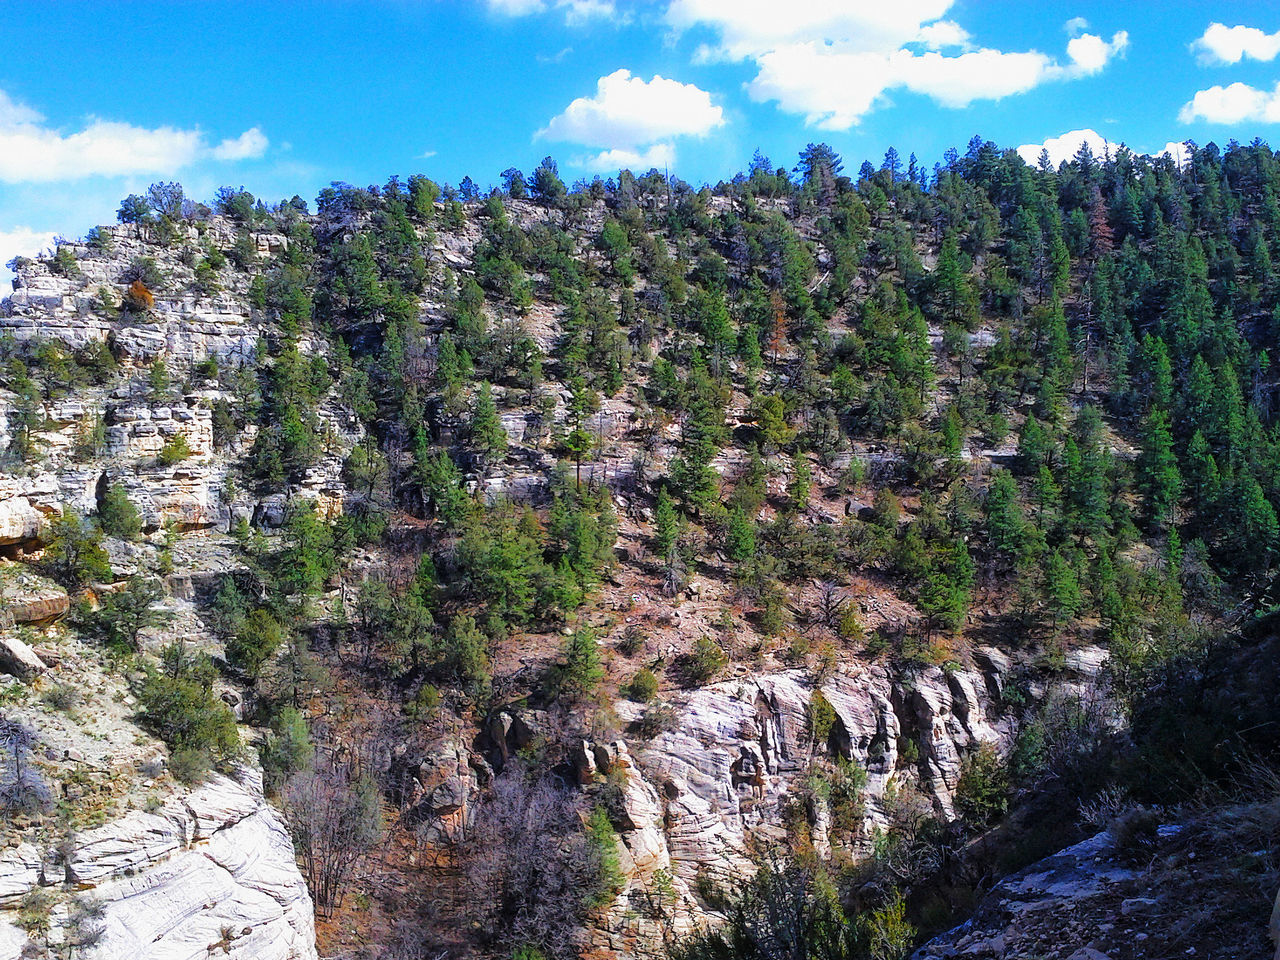 Adventures Anasazi Arizona Cliff Exploring Forest Geology Majestic Mountain Nature Outdoor Physical Geography Rock Rock - Object Rock Formation Rocky Rough Ruins Scenics State Park  Walnut Canyon